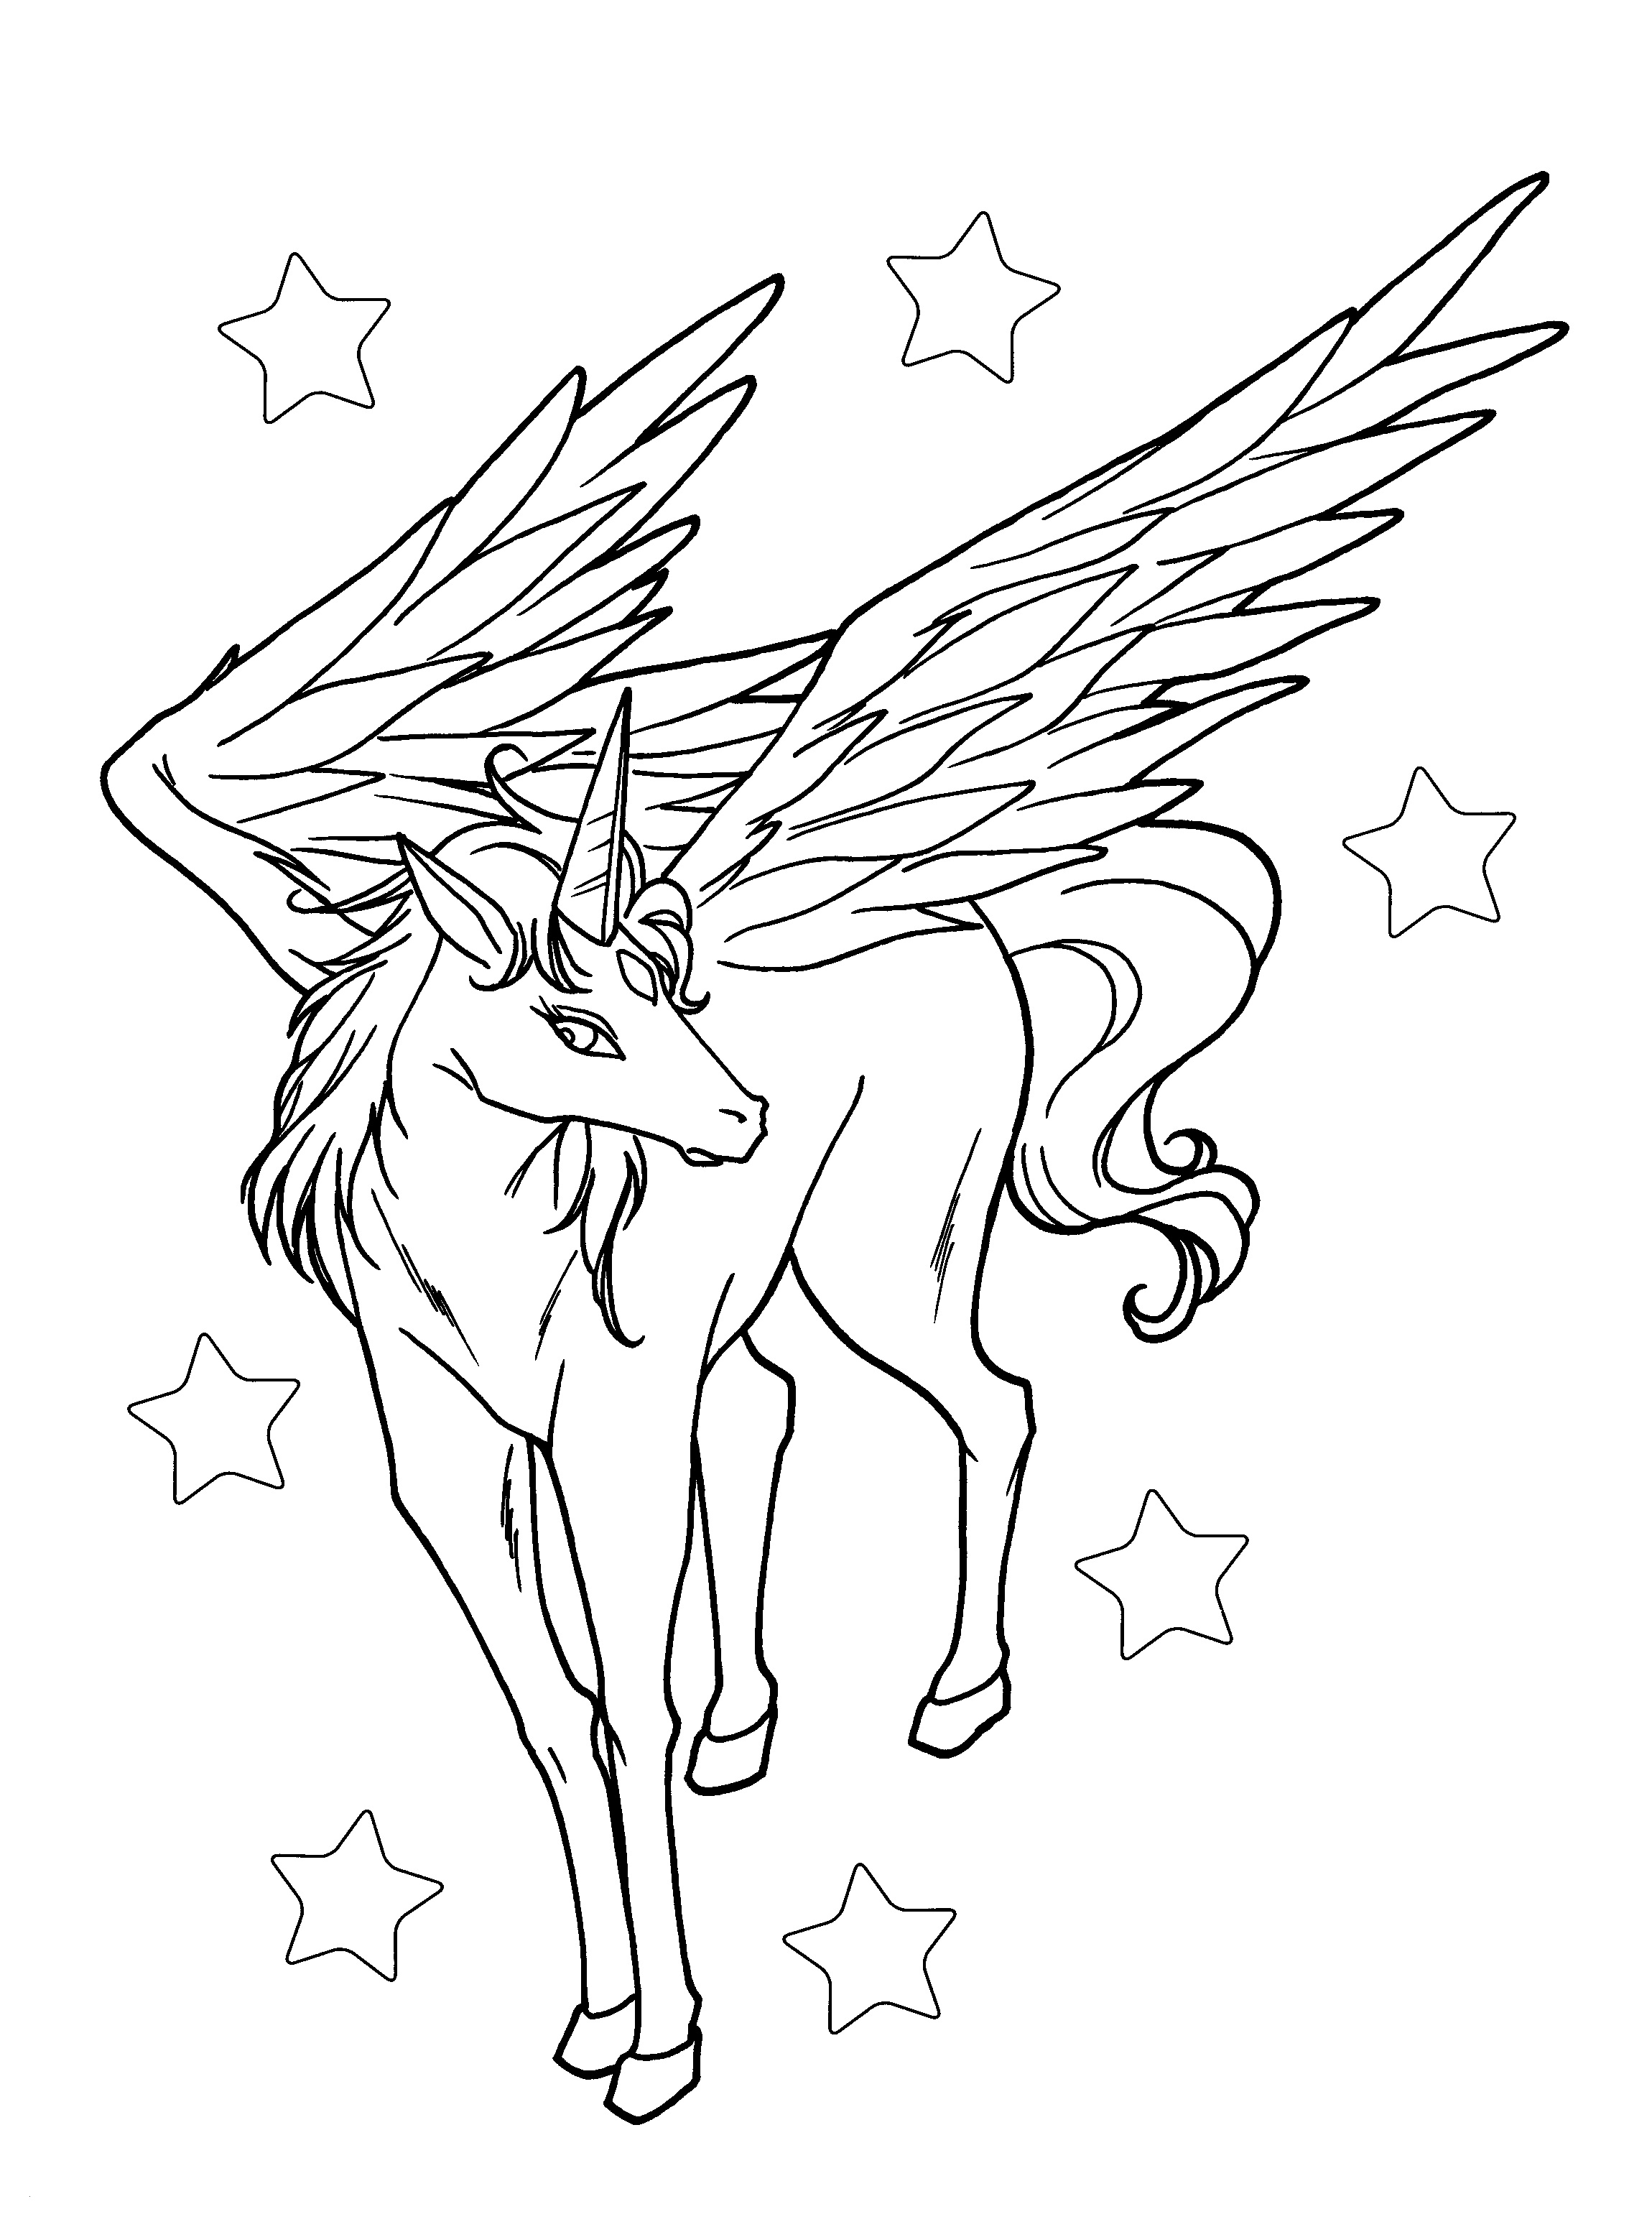 winged cat coloring pages Collection-Winged Cat Coloring Pages Pegasus Coloring Pages Elegant Sailormoon Coloring Pages Coloring 3-r